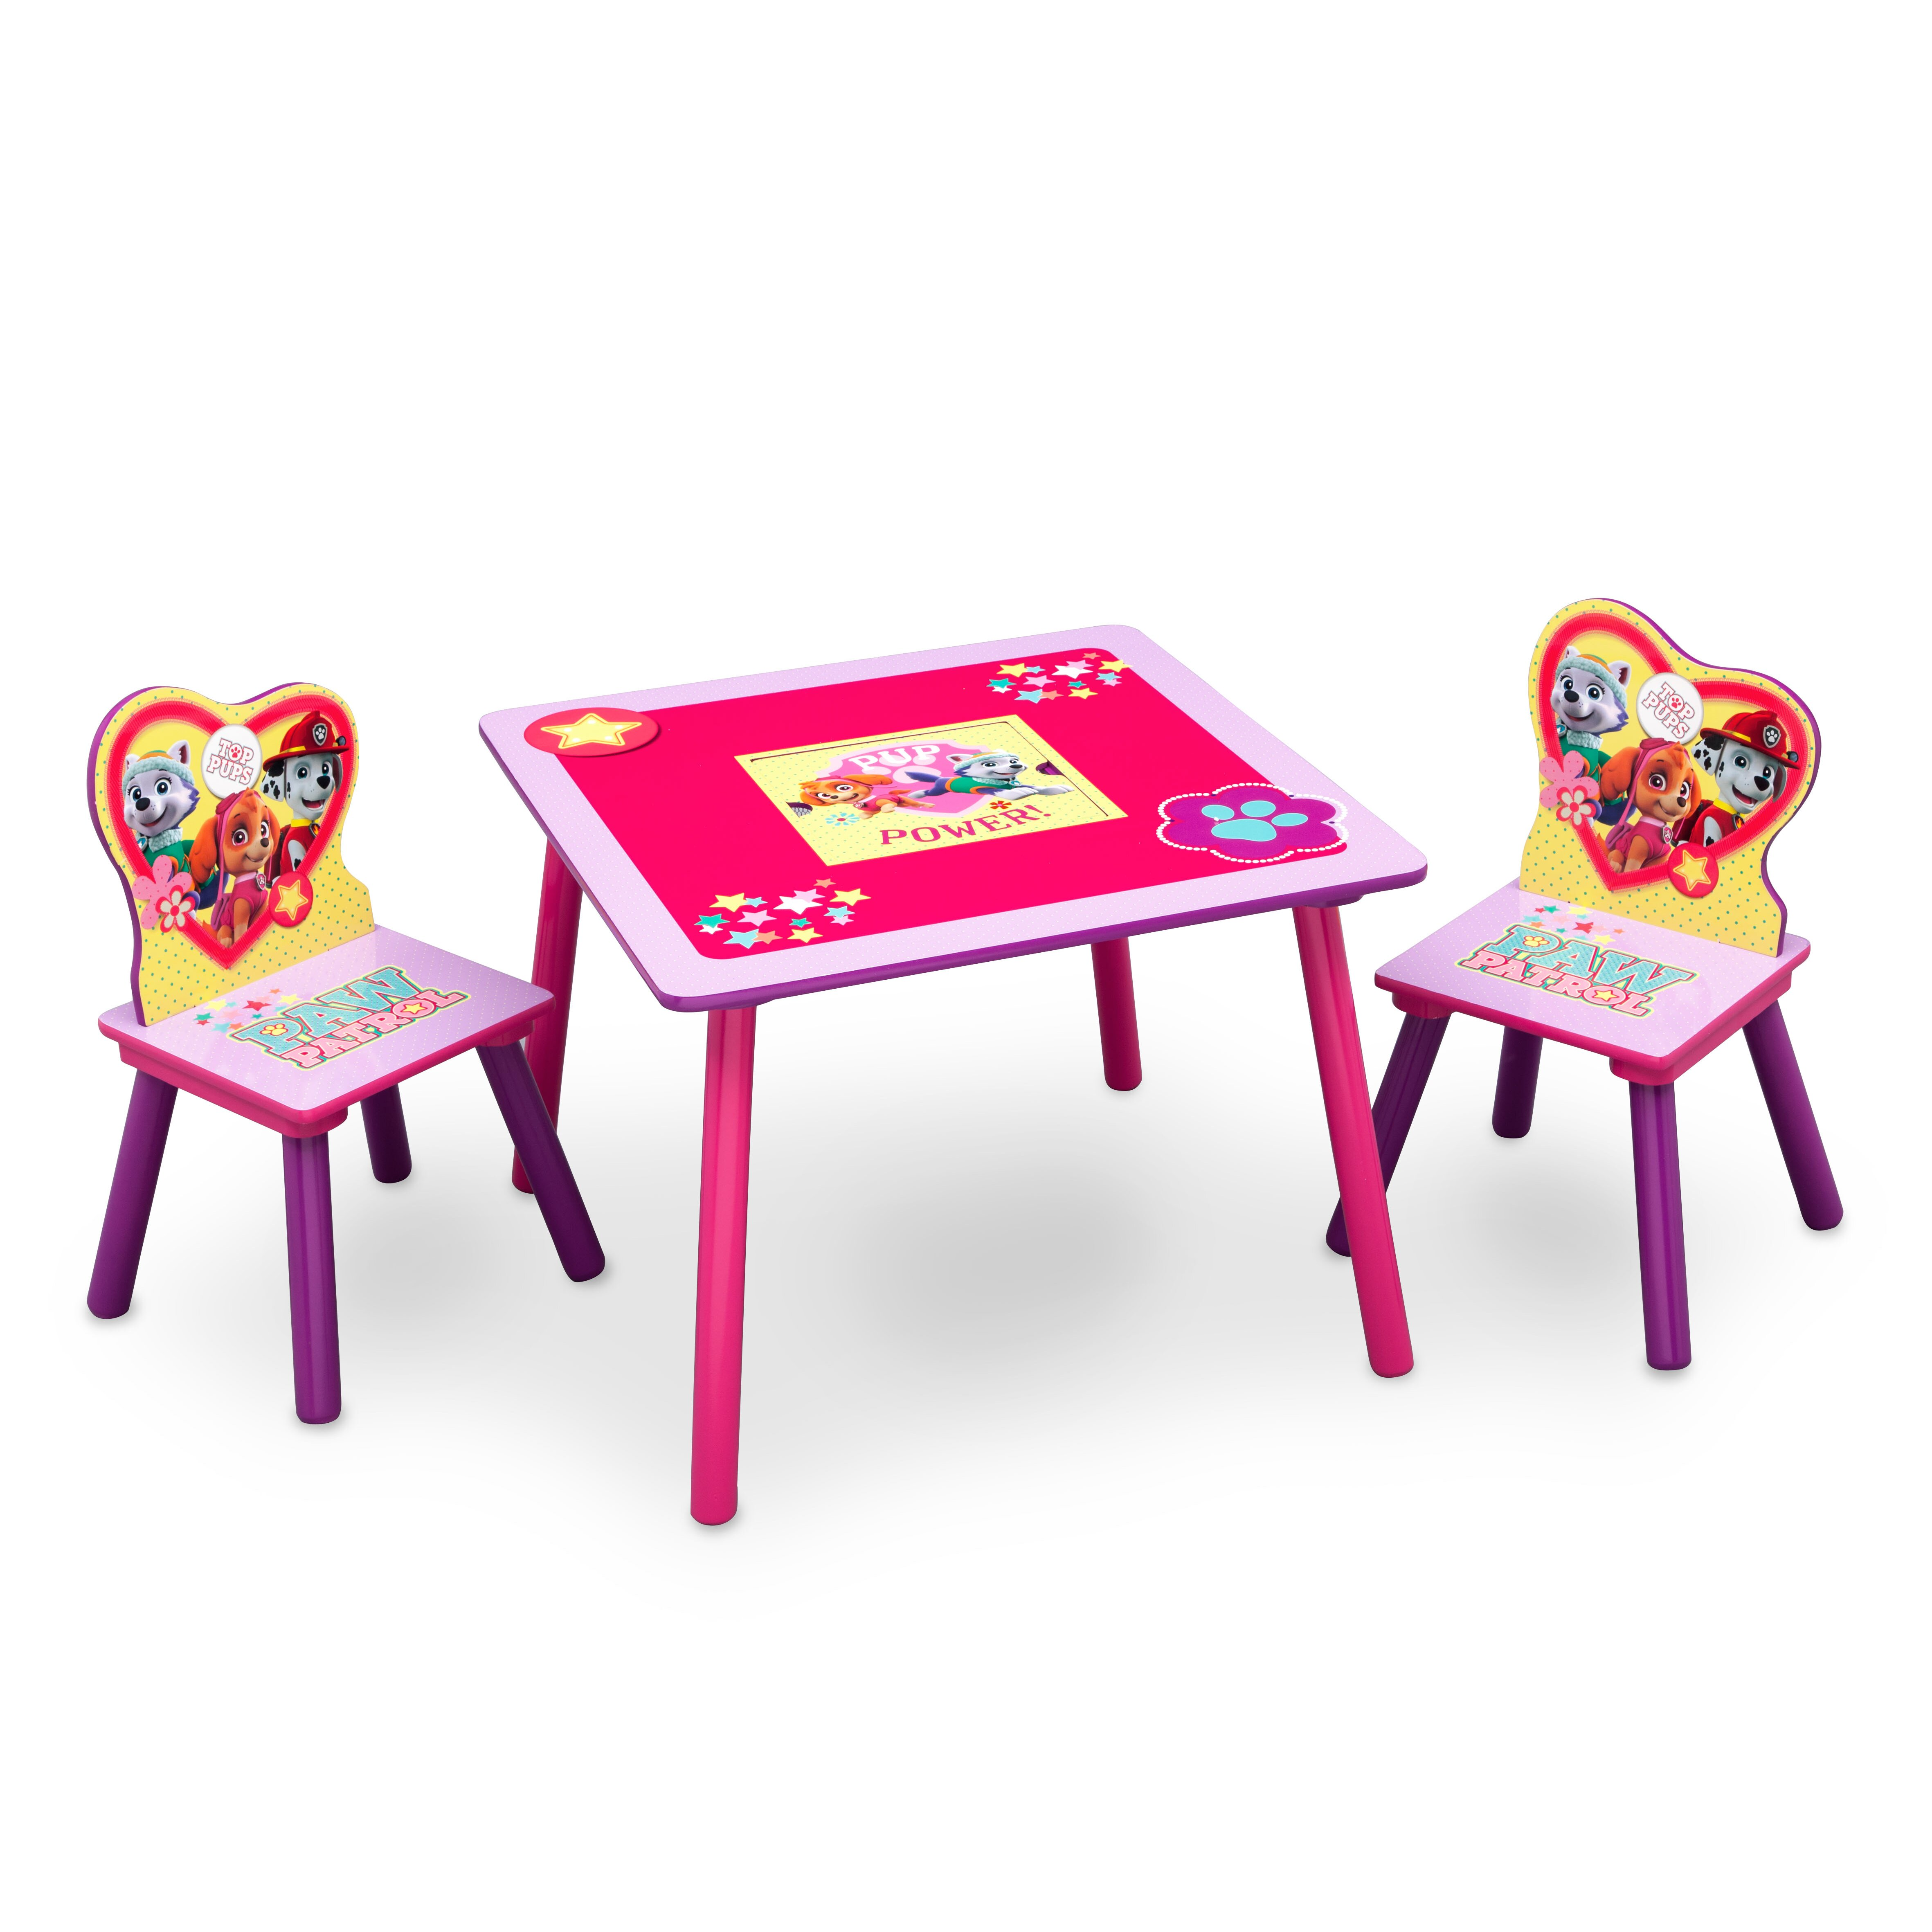 Toddler Chair For Dining Room Table